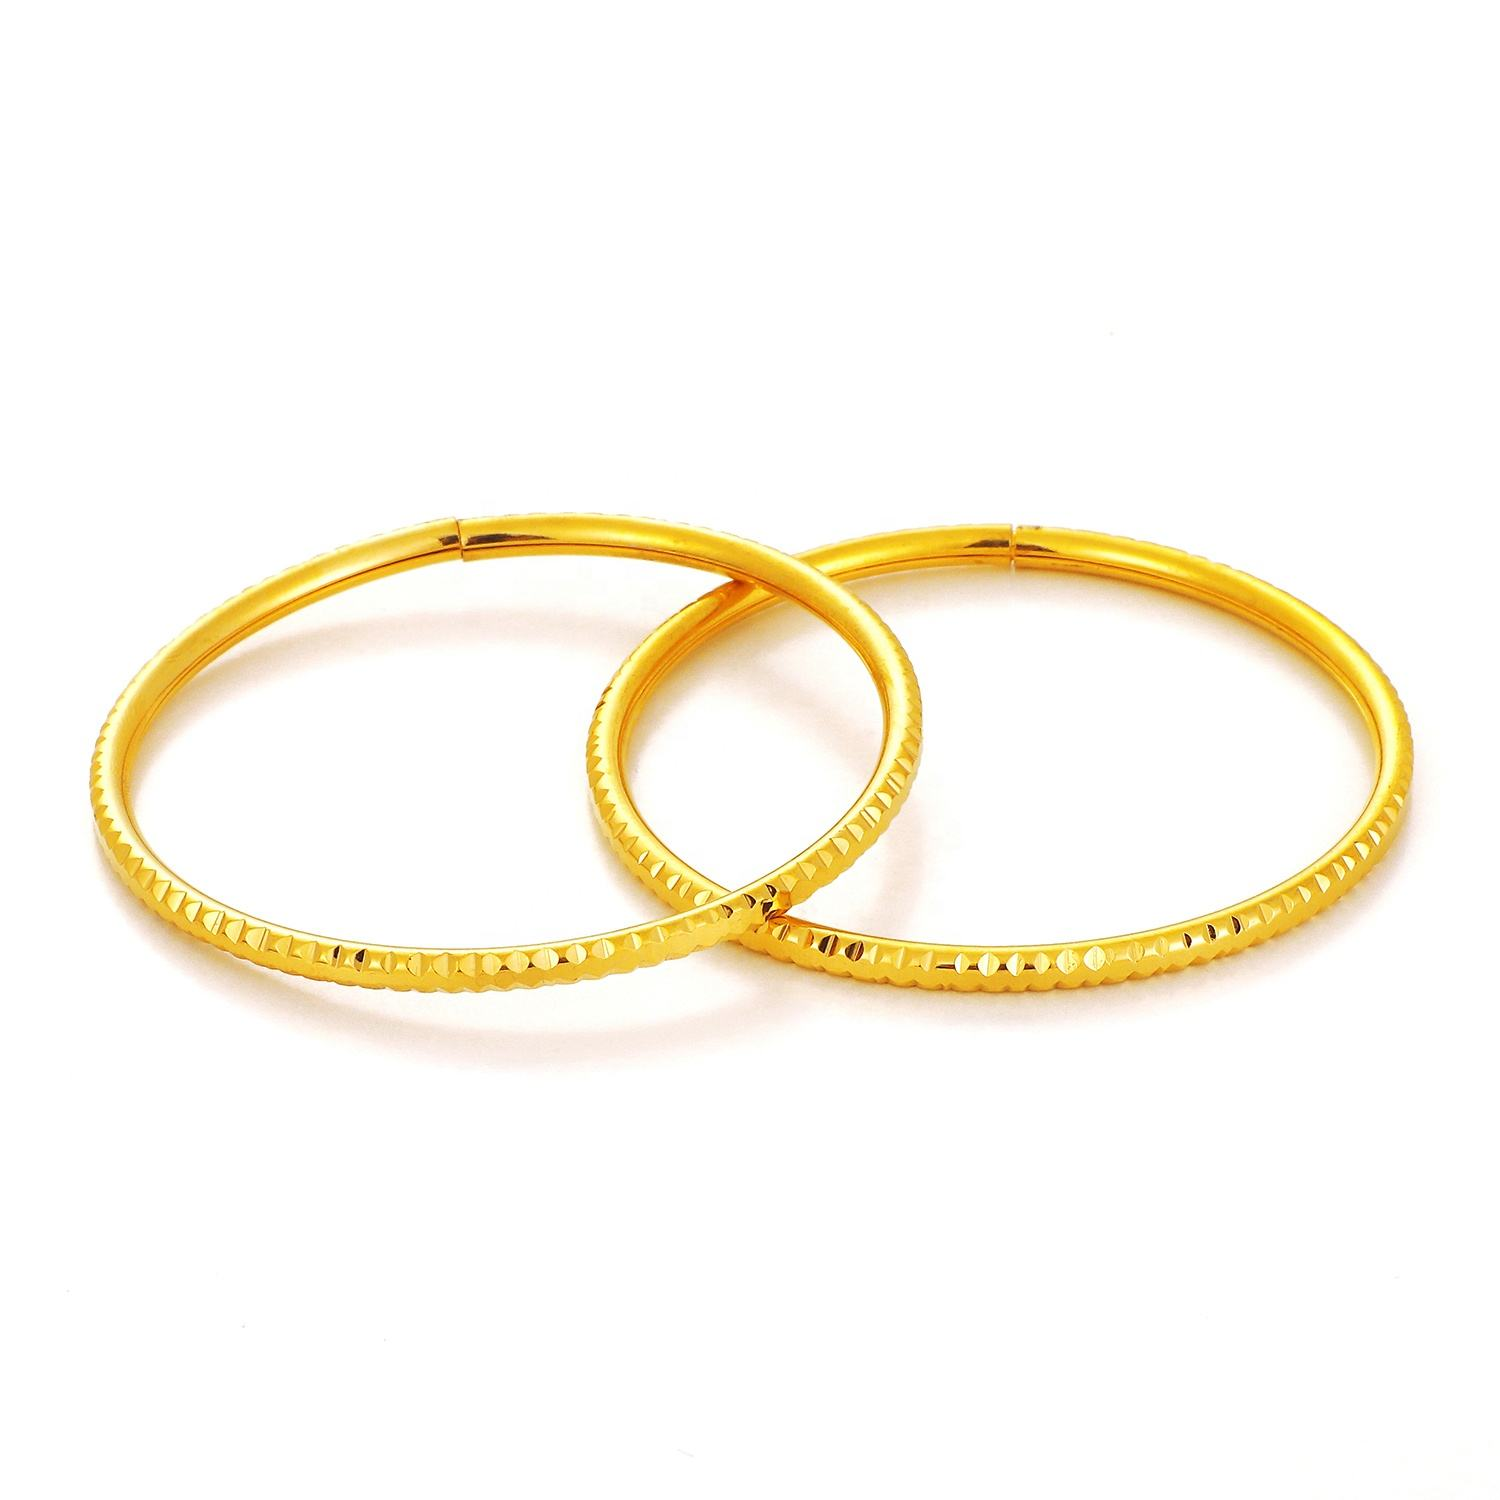 Ethlyn 2Pcs/Lot Small Bangle for Girls/Baby Gold Color Charm India Anklet Bracelet Jewelry Child Party Gifts MY105